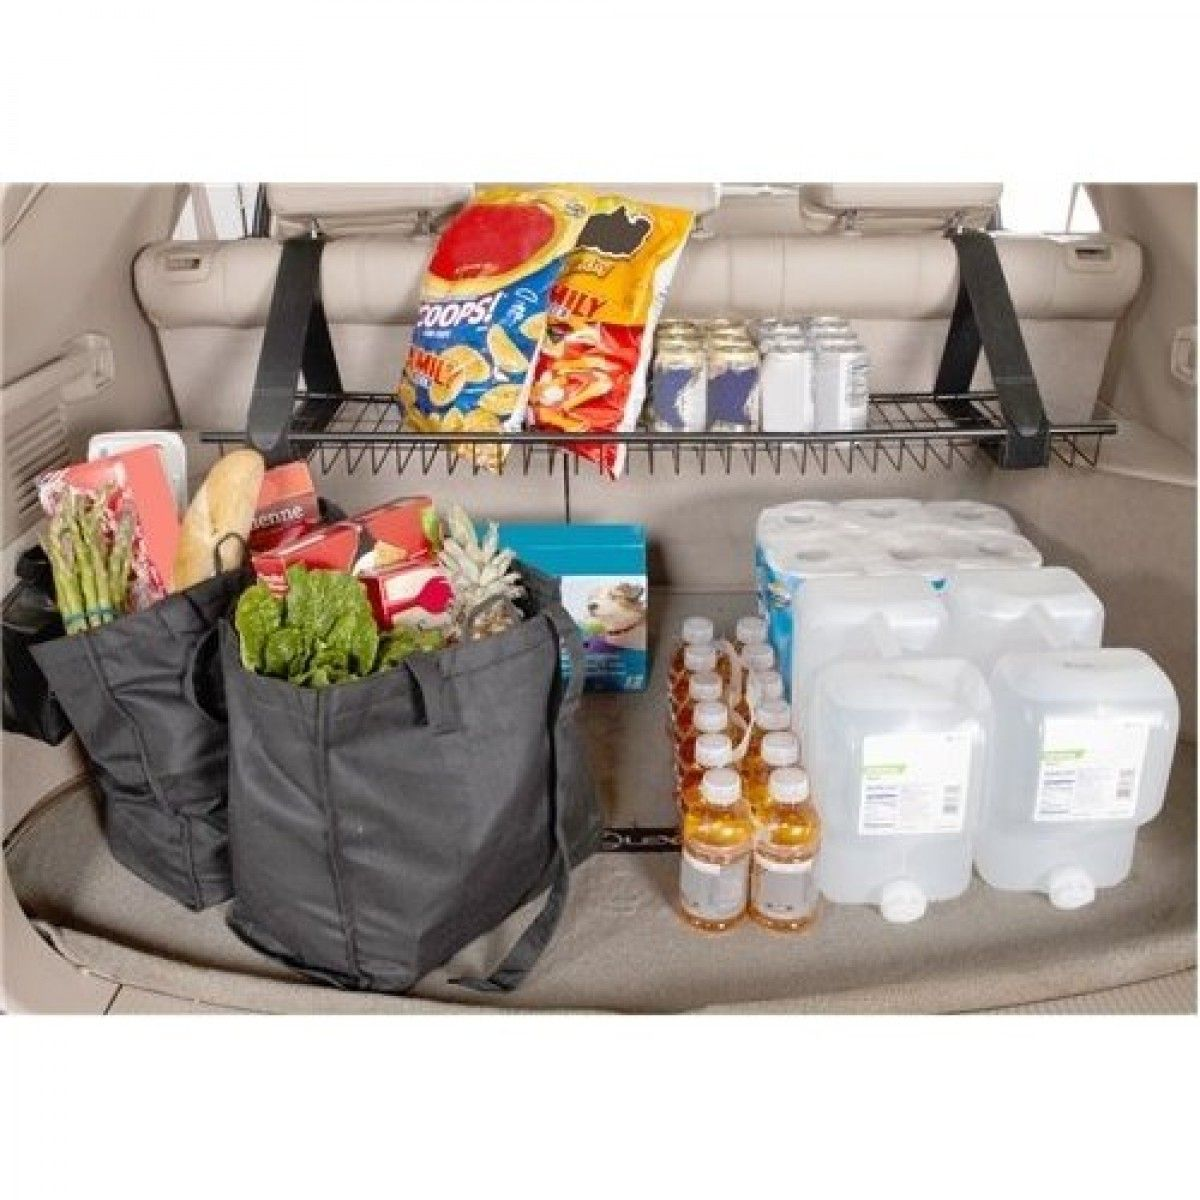 How To Organize Your Minivan So It S Functional And Stylish